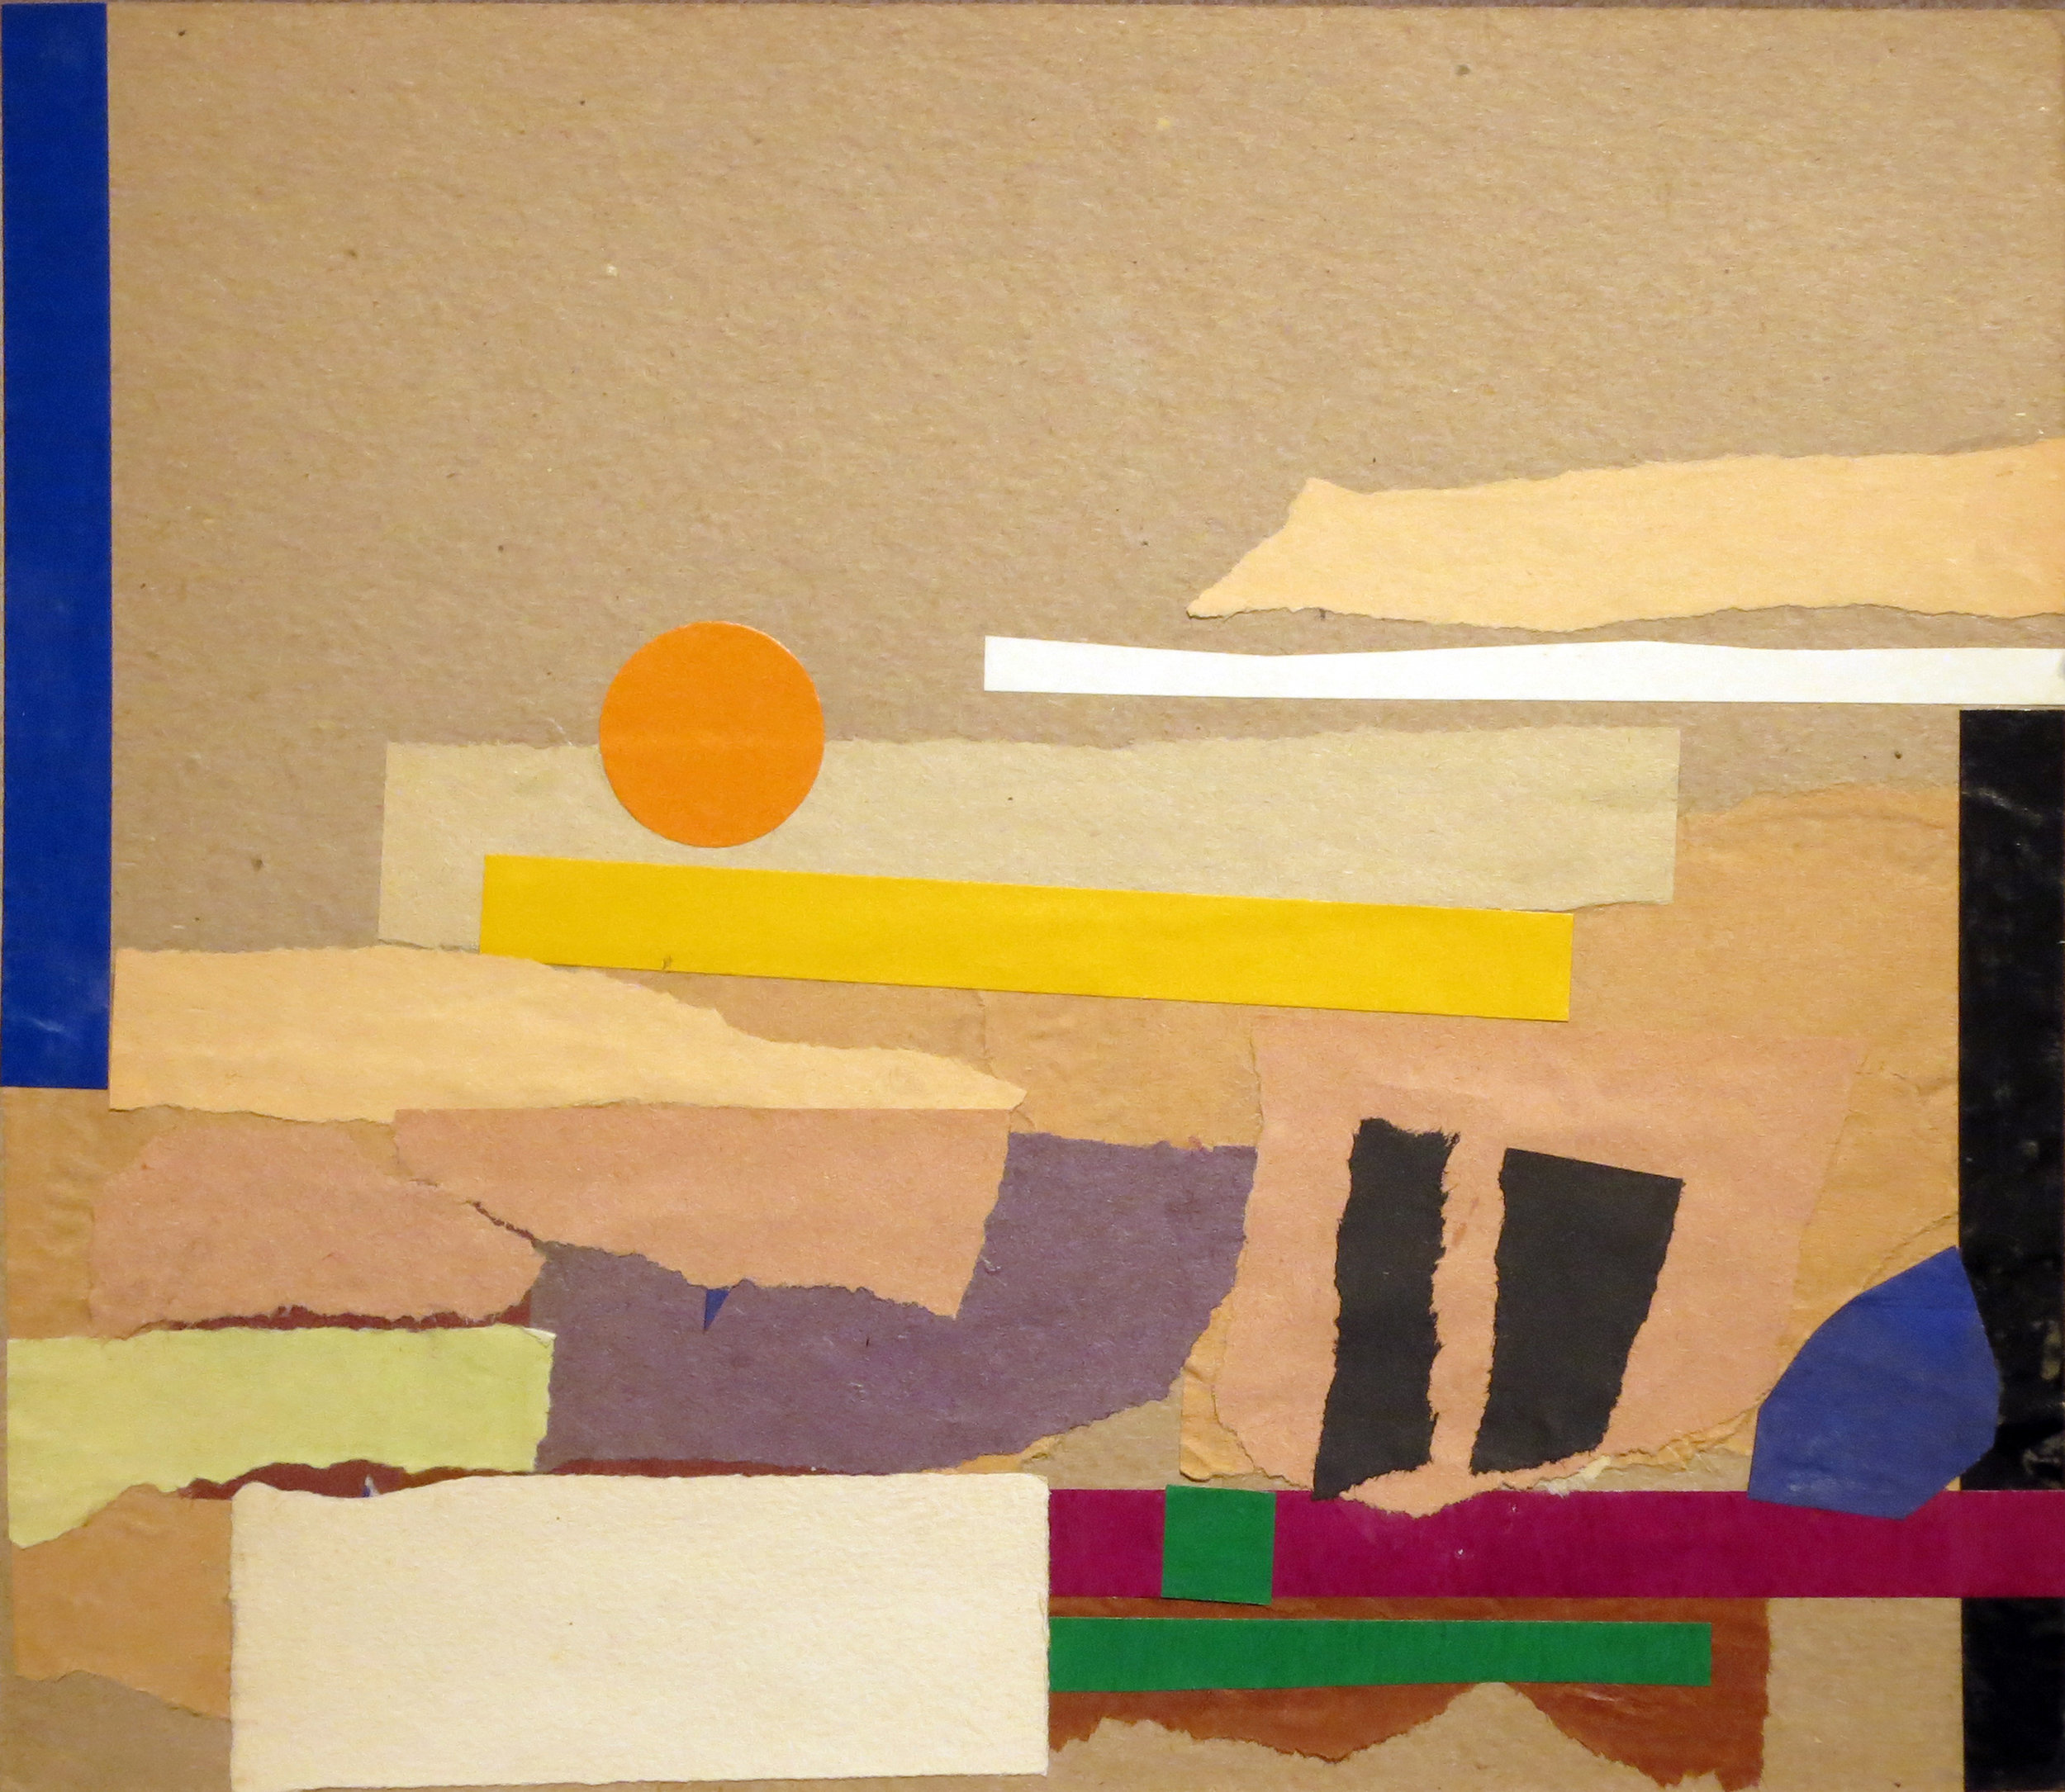 Abstract collage with strips of horizontal paper and orange sun